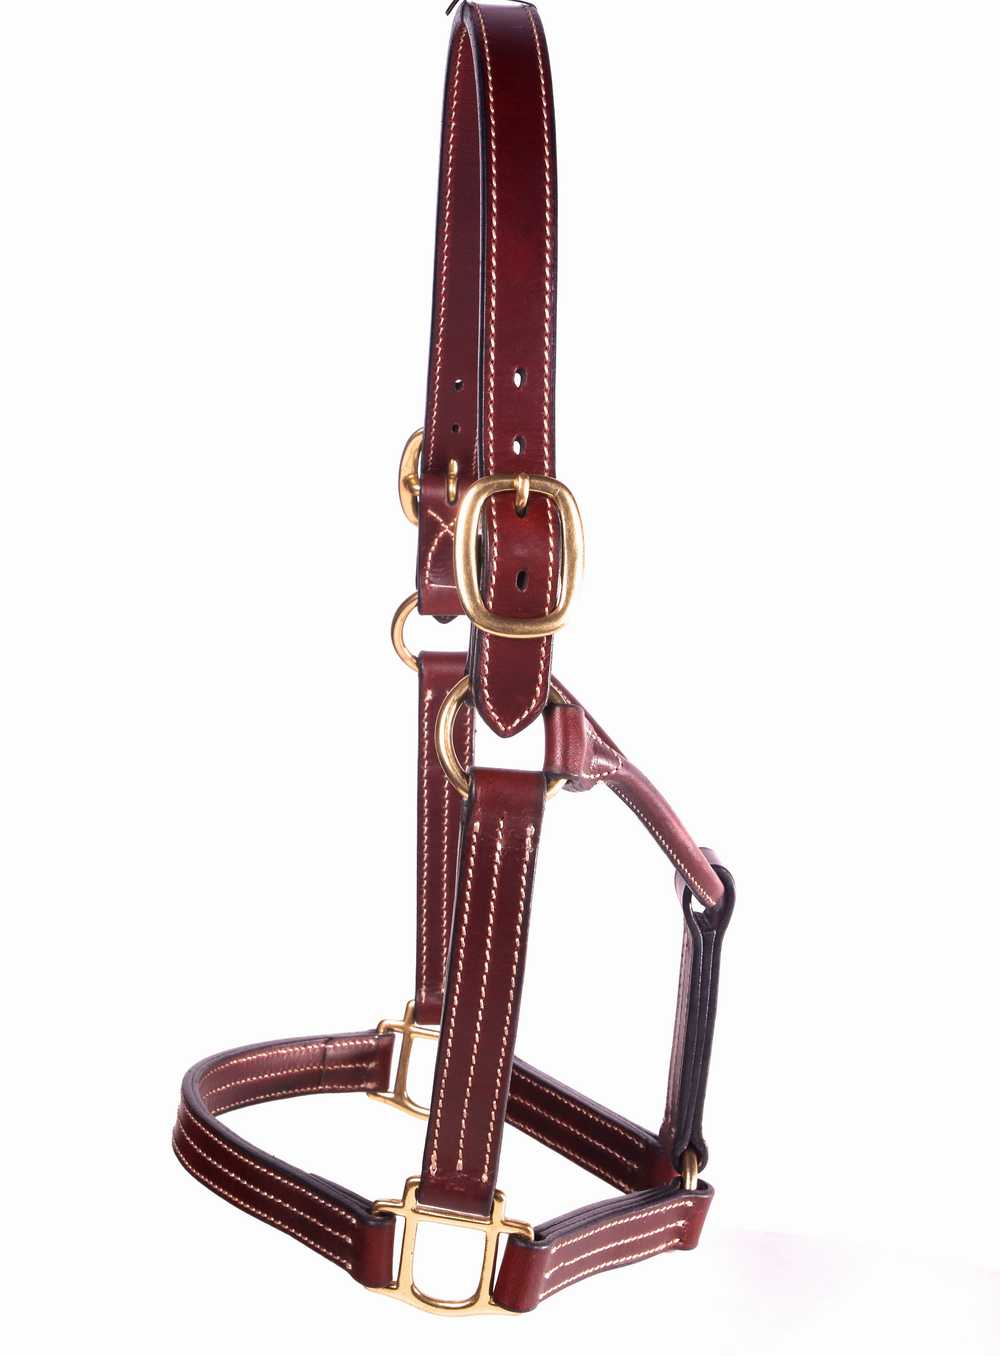 Stephens Leather Halter